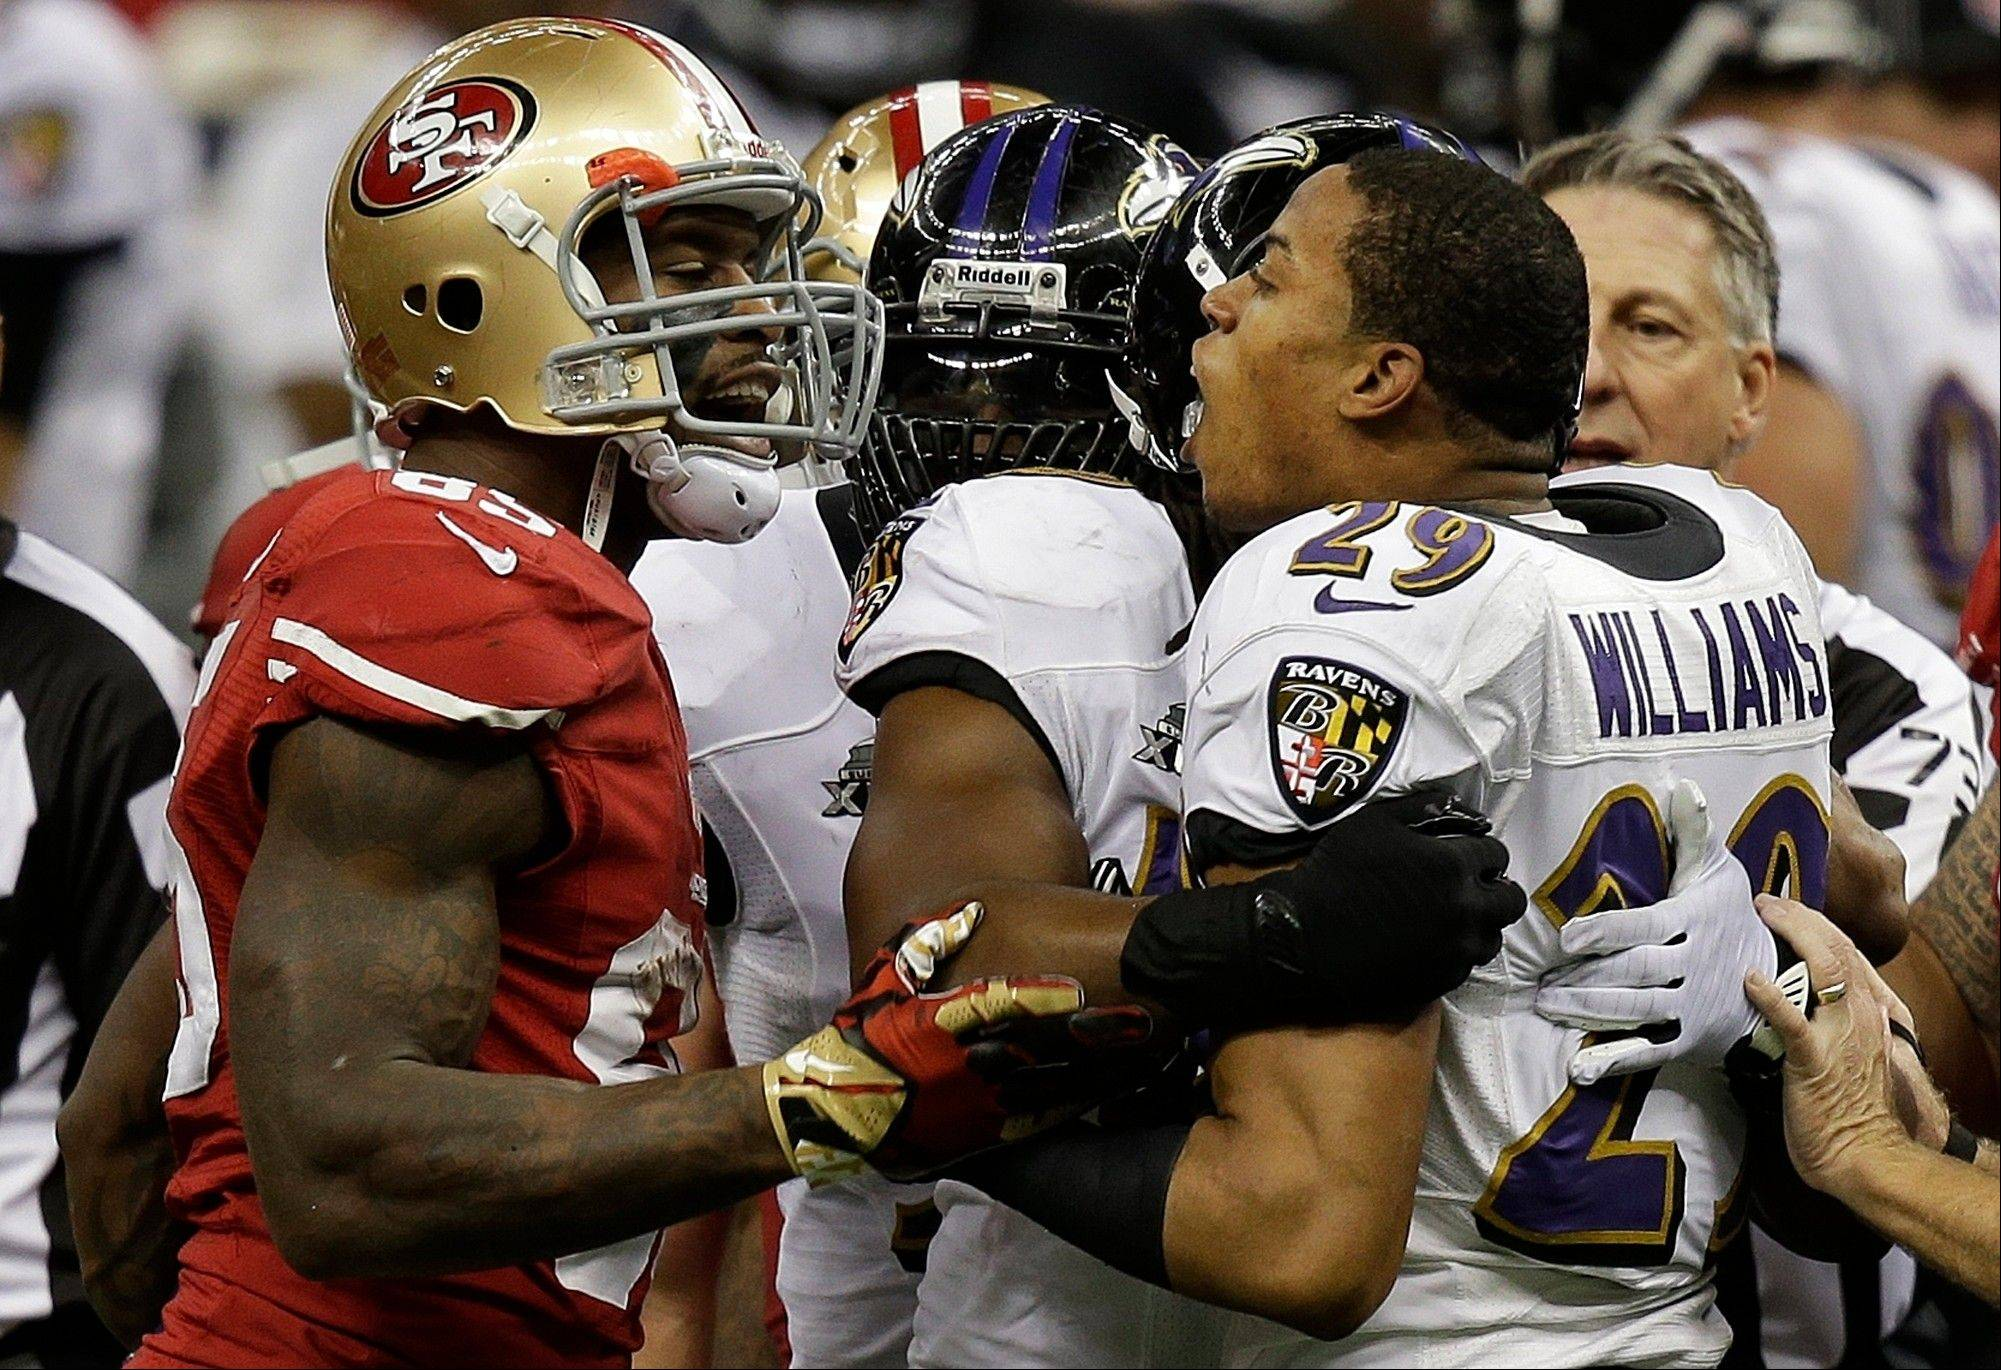 San Francisco 49ers tight end Vernon Davis (85) and Baltimore Ravens cornerback Cary Williams (29) argue during the first half.